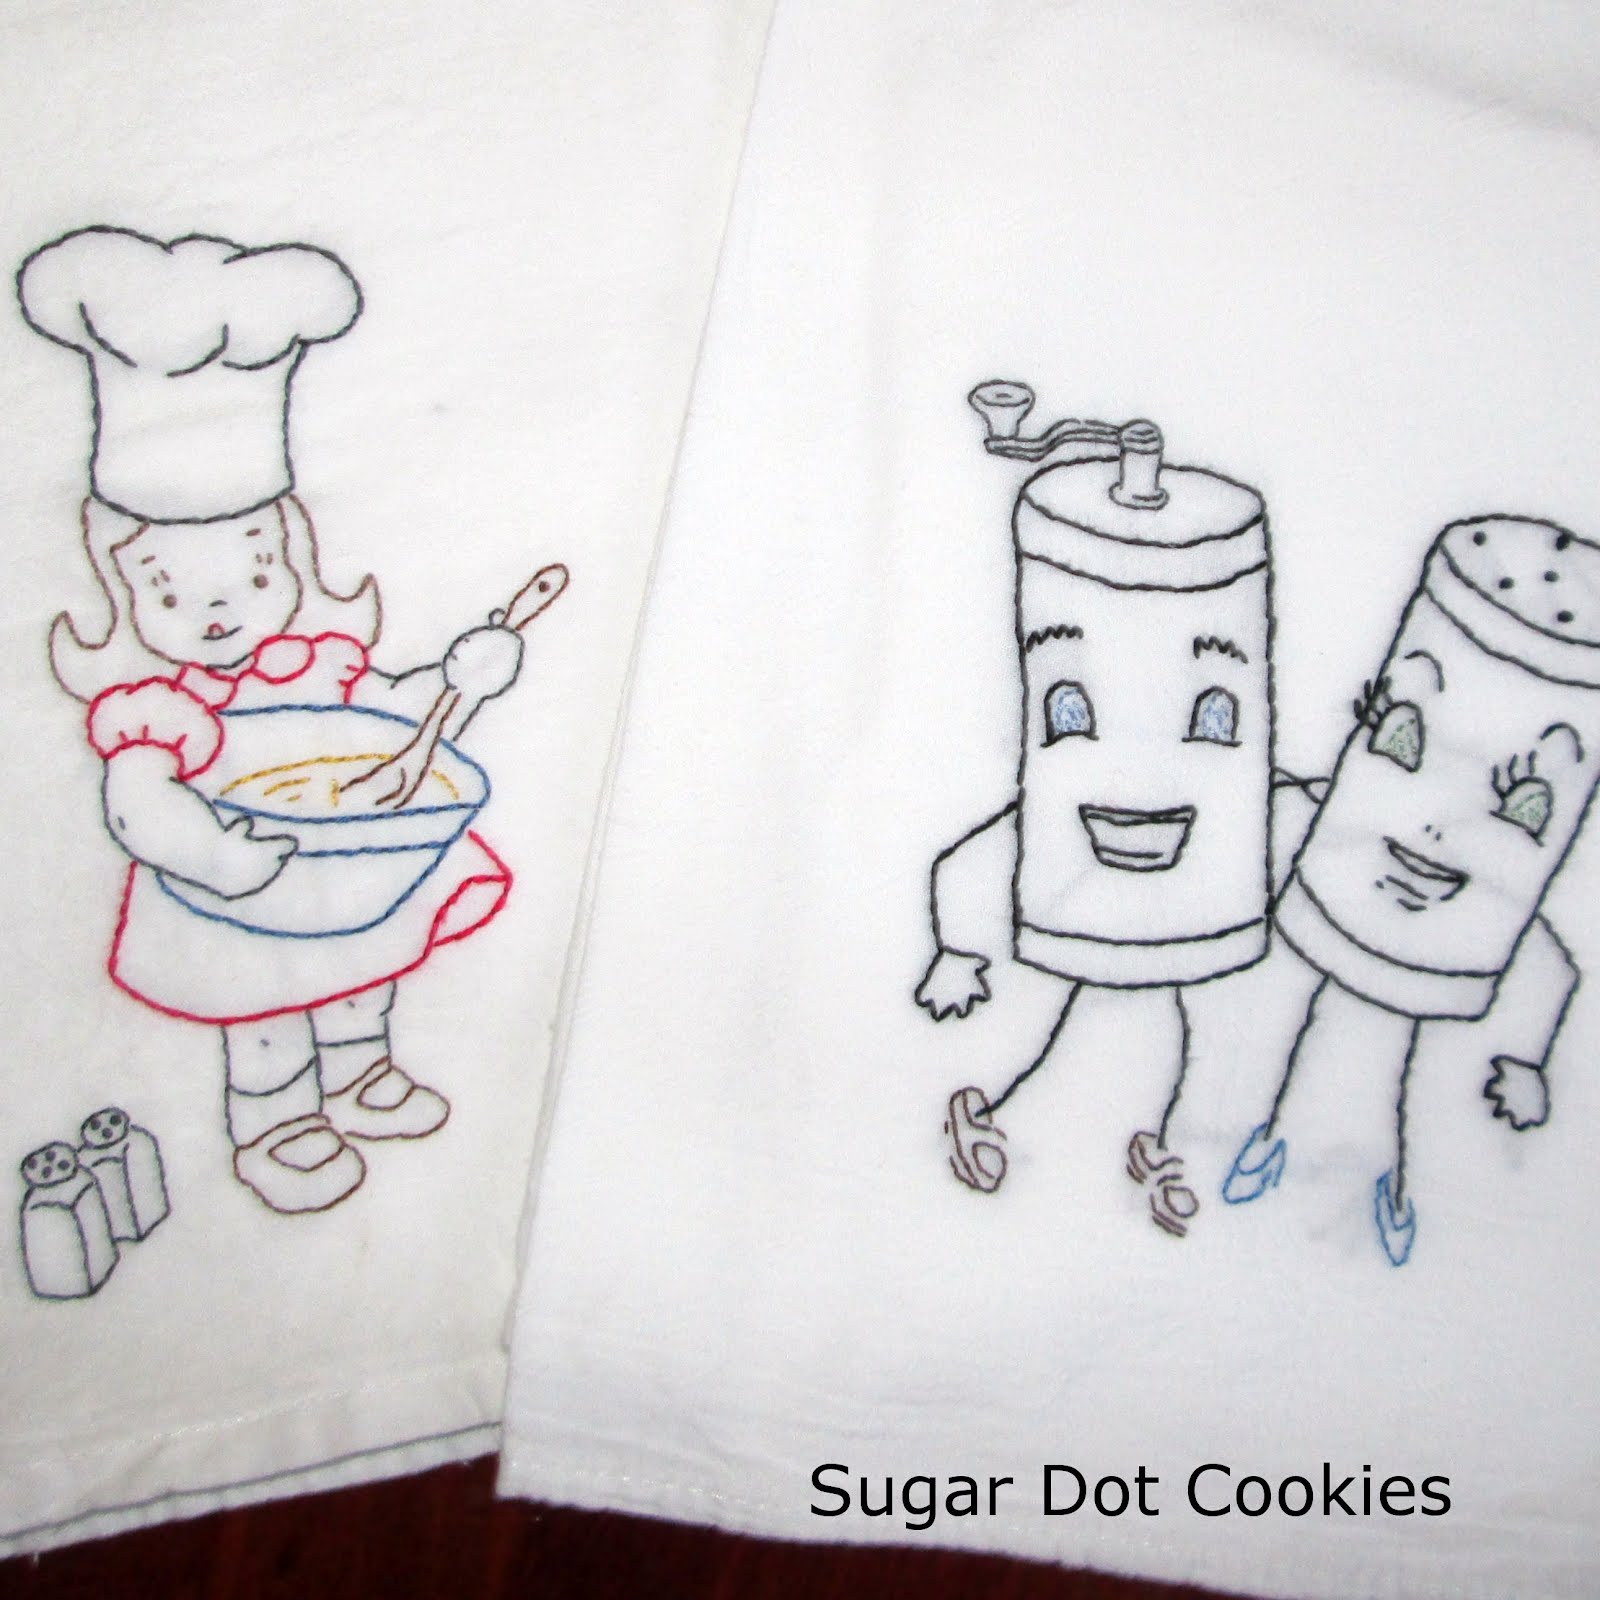 Kitchen Towel Embroidery Designs Gallery - handicraft ideas home ...